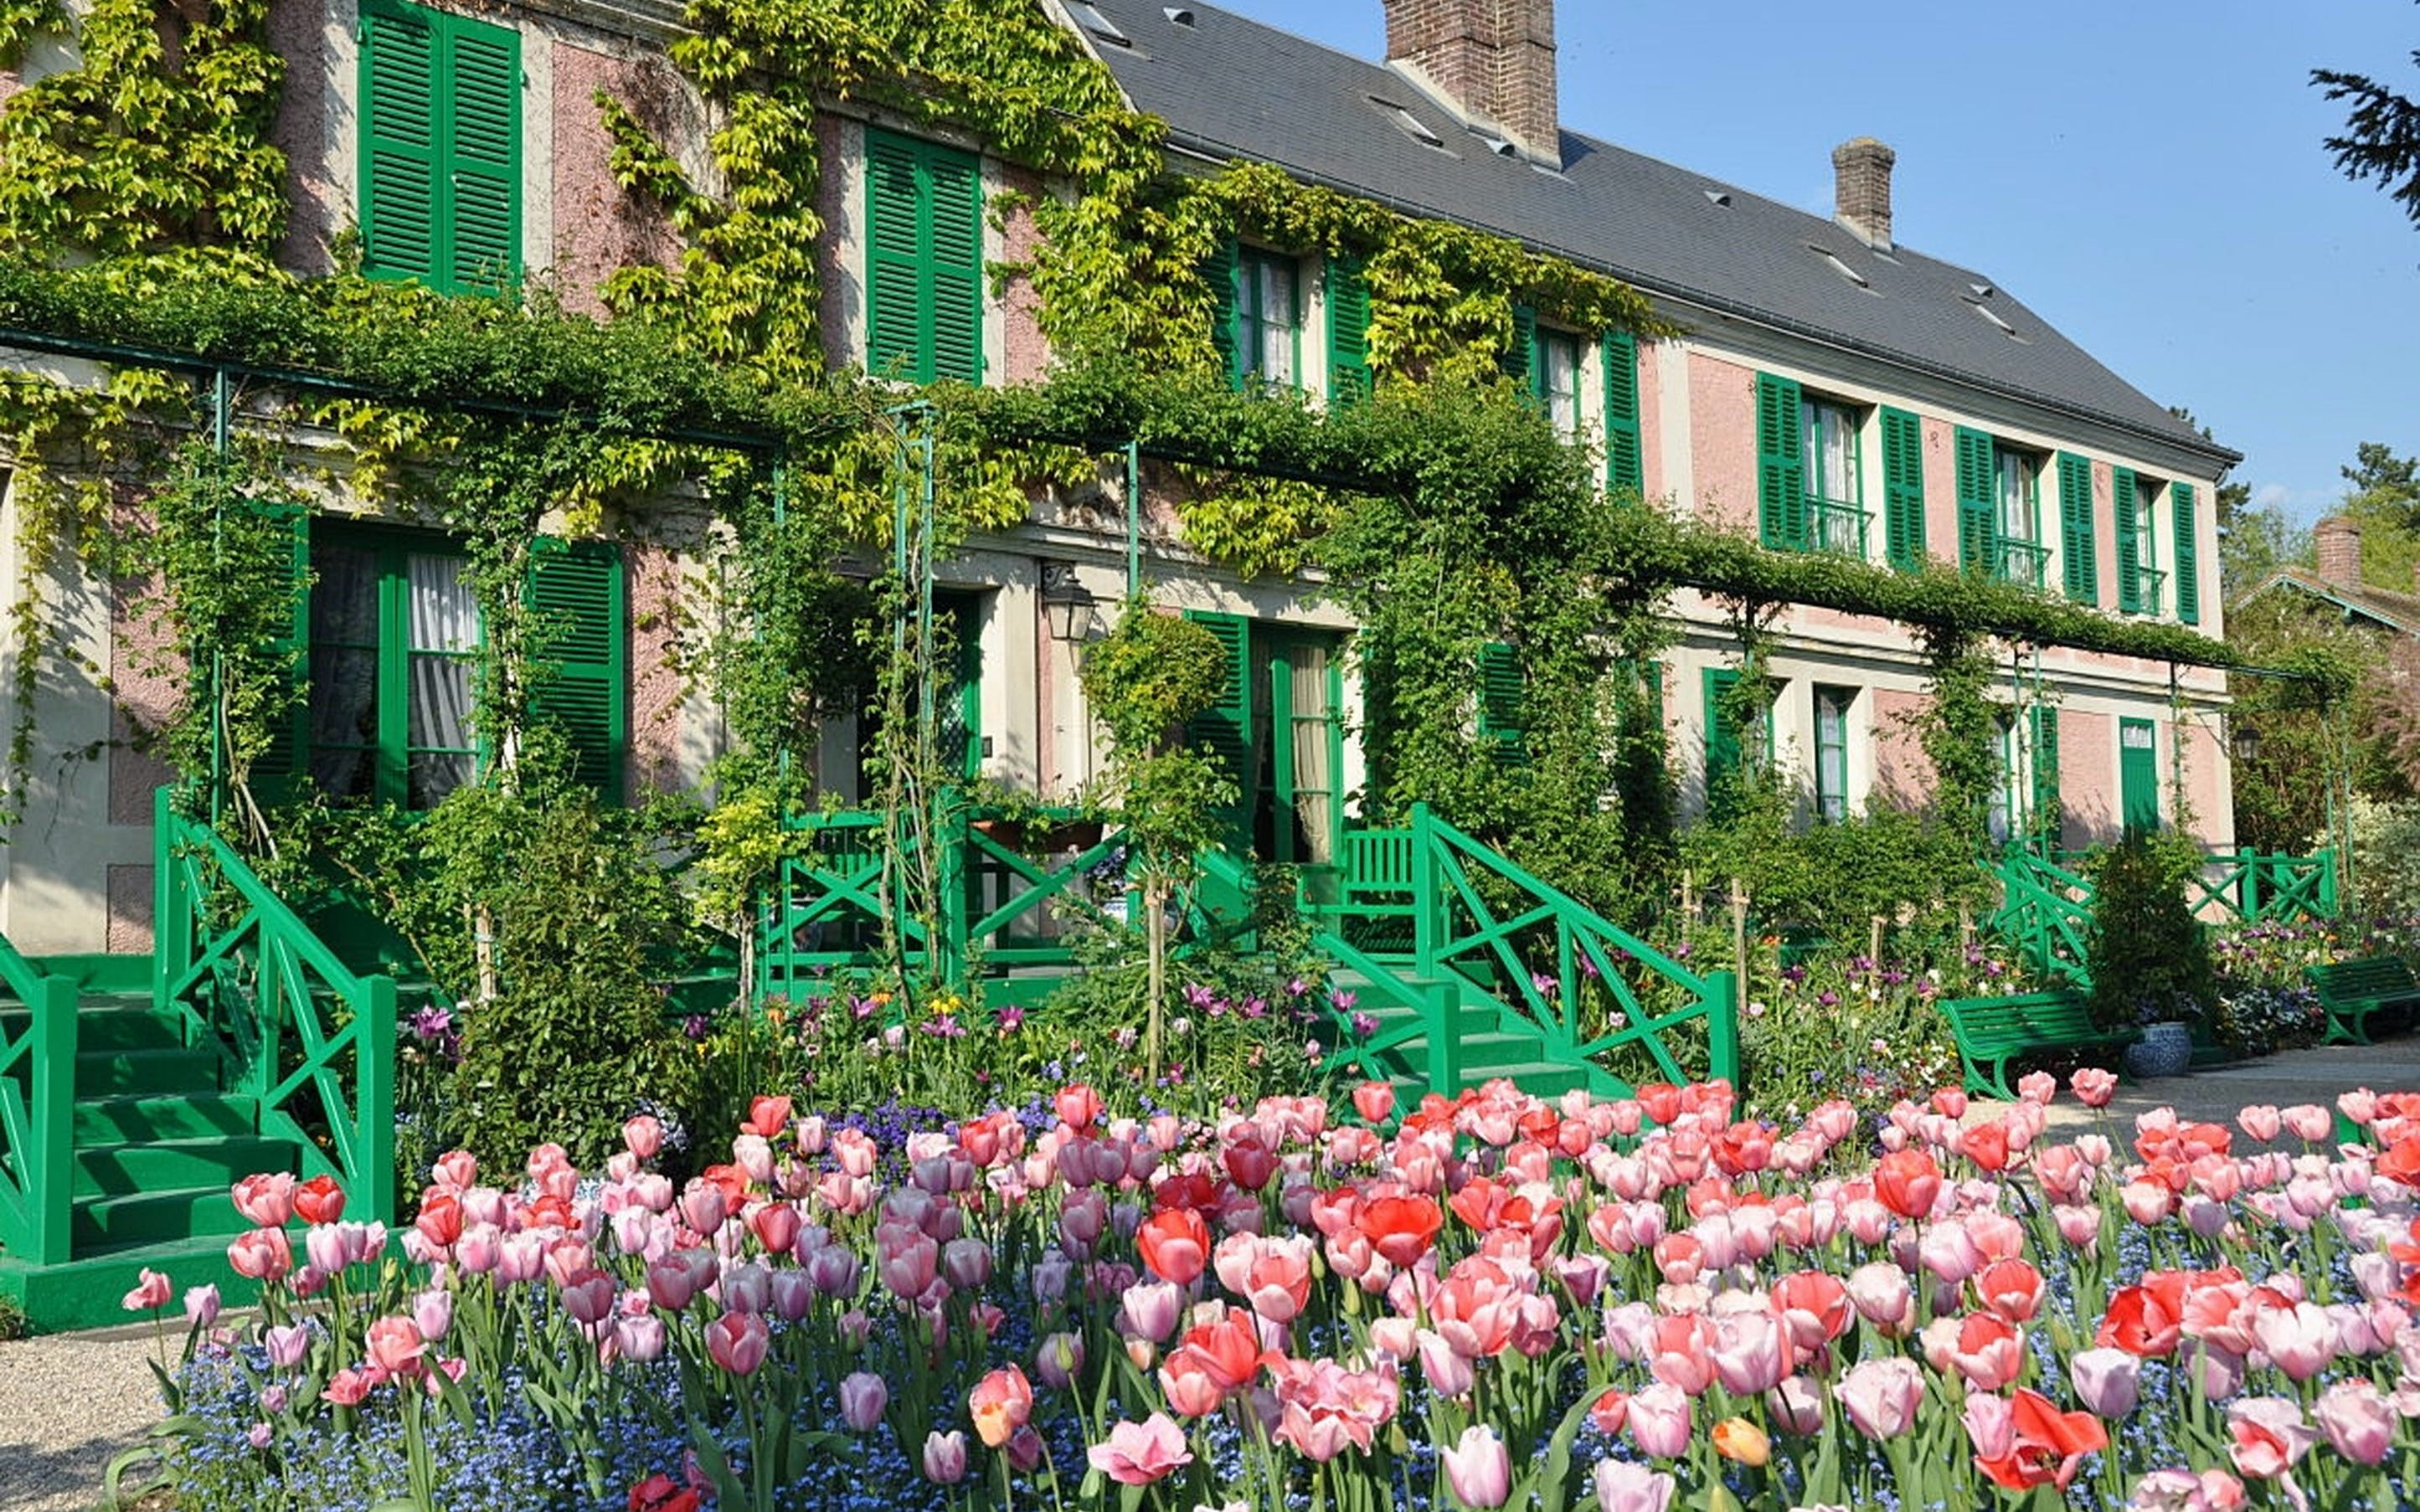 giverny, monet's garden & versailles palace full day trip from paris-2